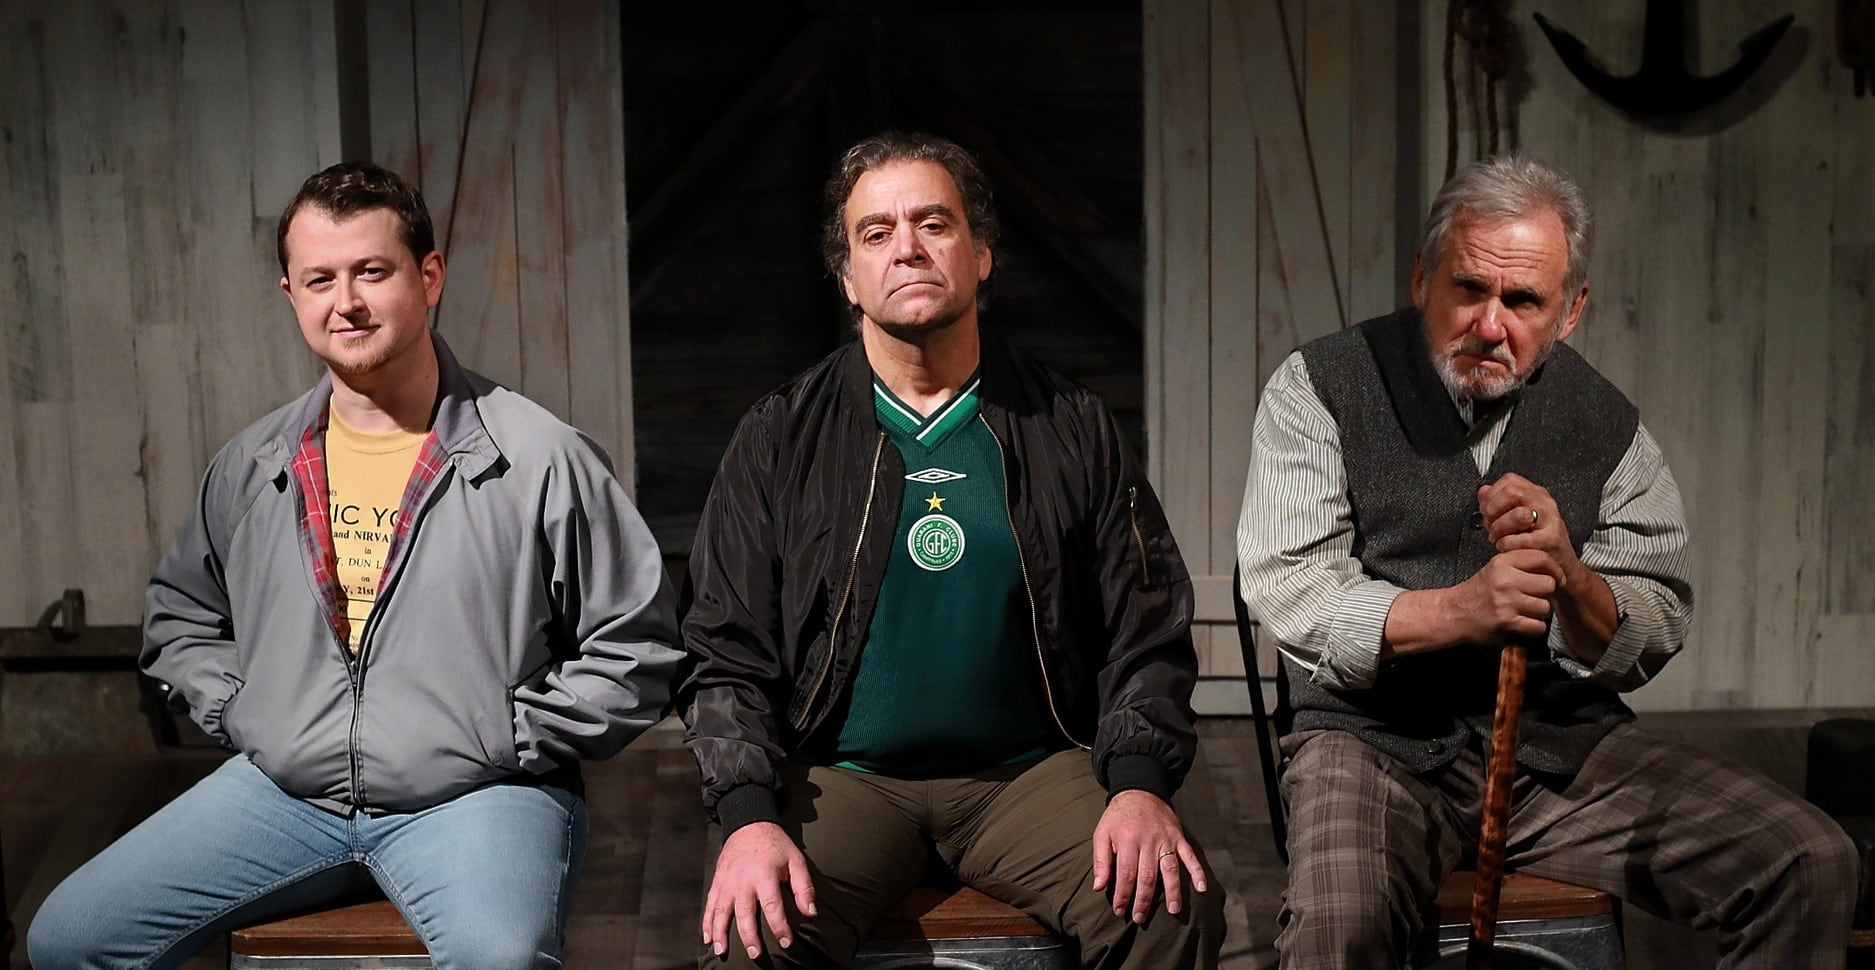 Chris Stinson as Kevin, Matthew Vaky as Dermot, and Joseph Palka as Joe in 'Port Authority' at Quotidian Theatre Company. Photo by Steve LaRocque.